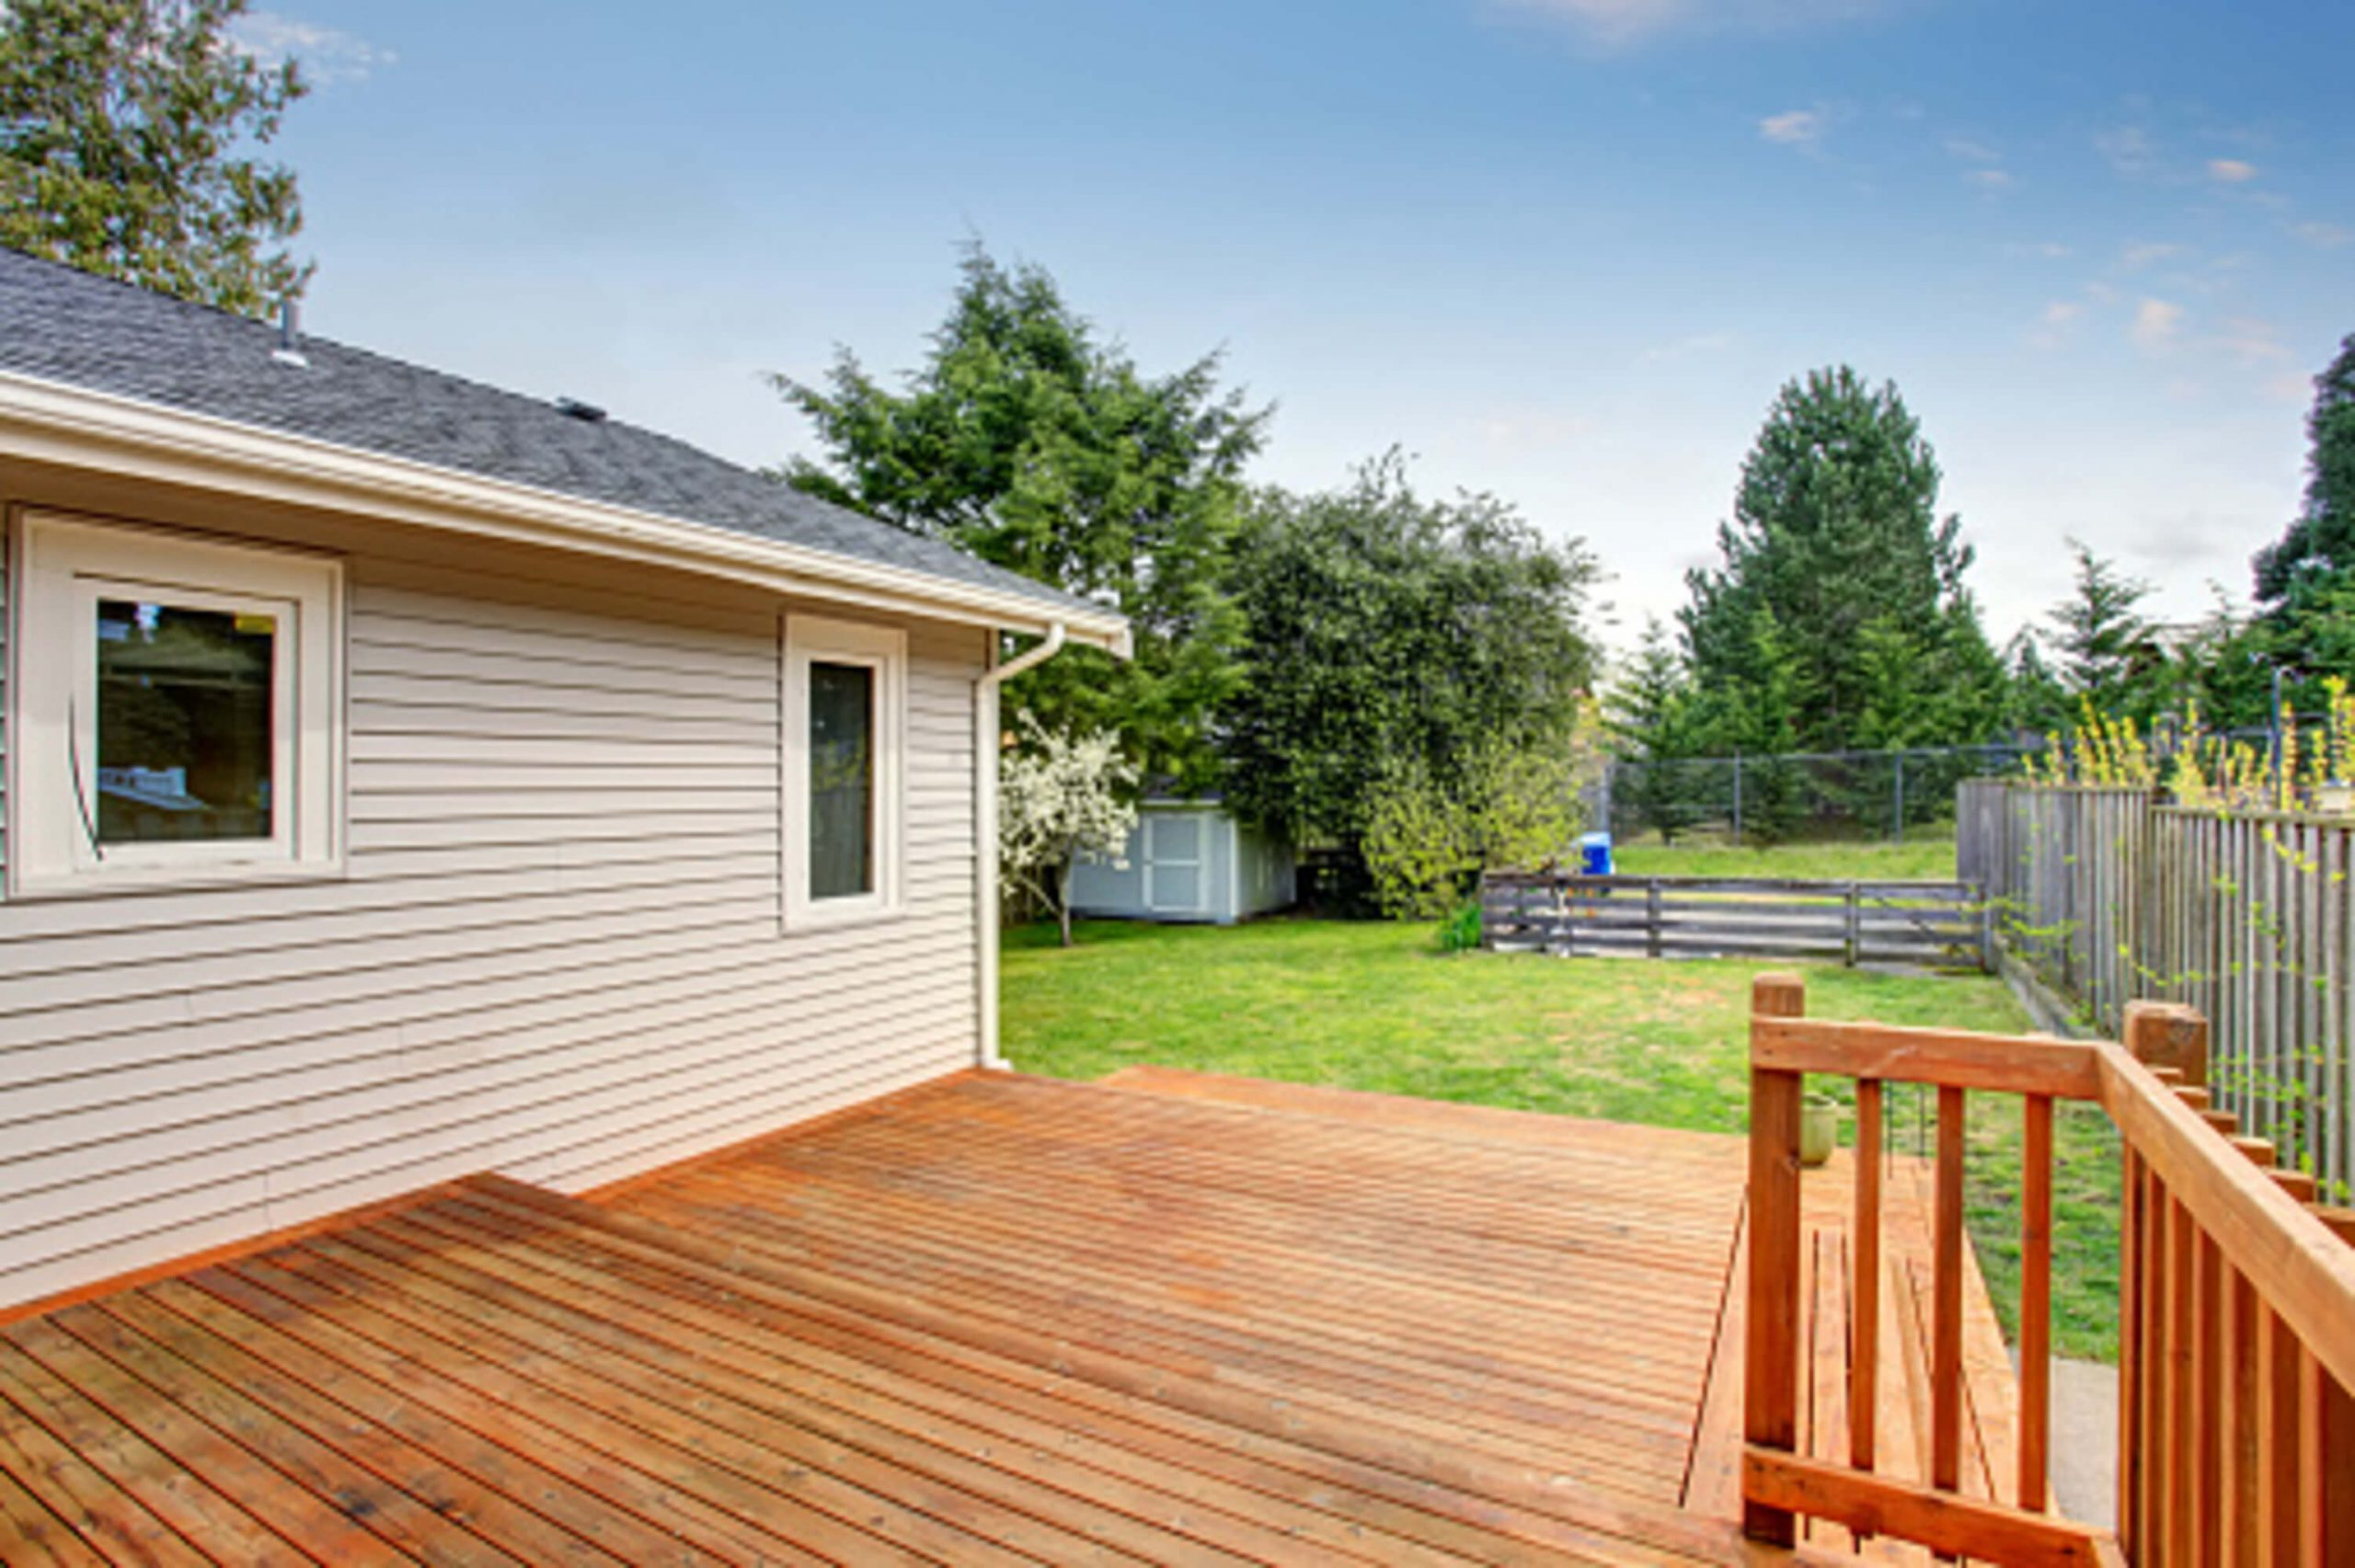 DIY Construction: How to Build An Elevated Back Deck